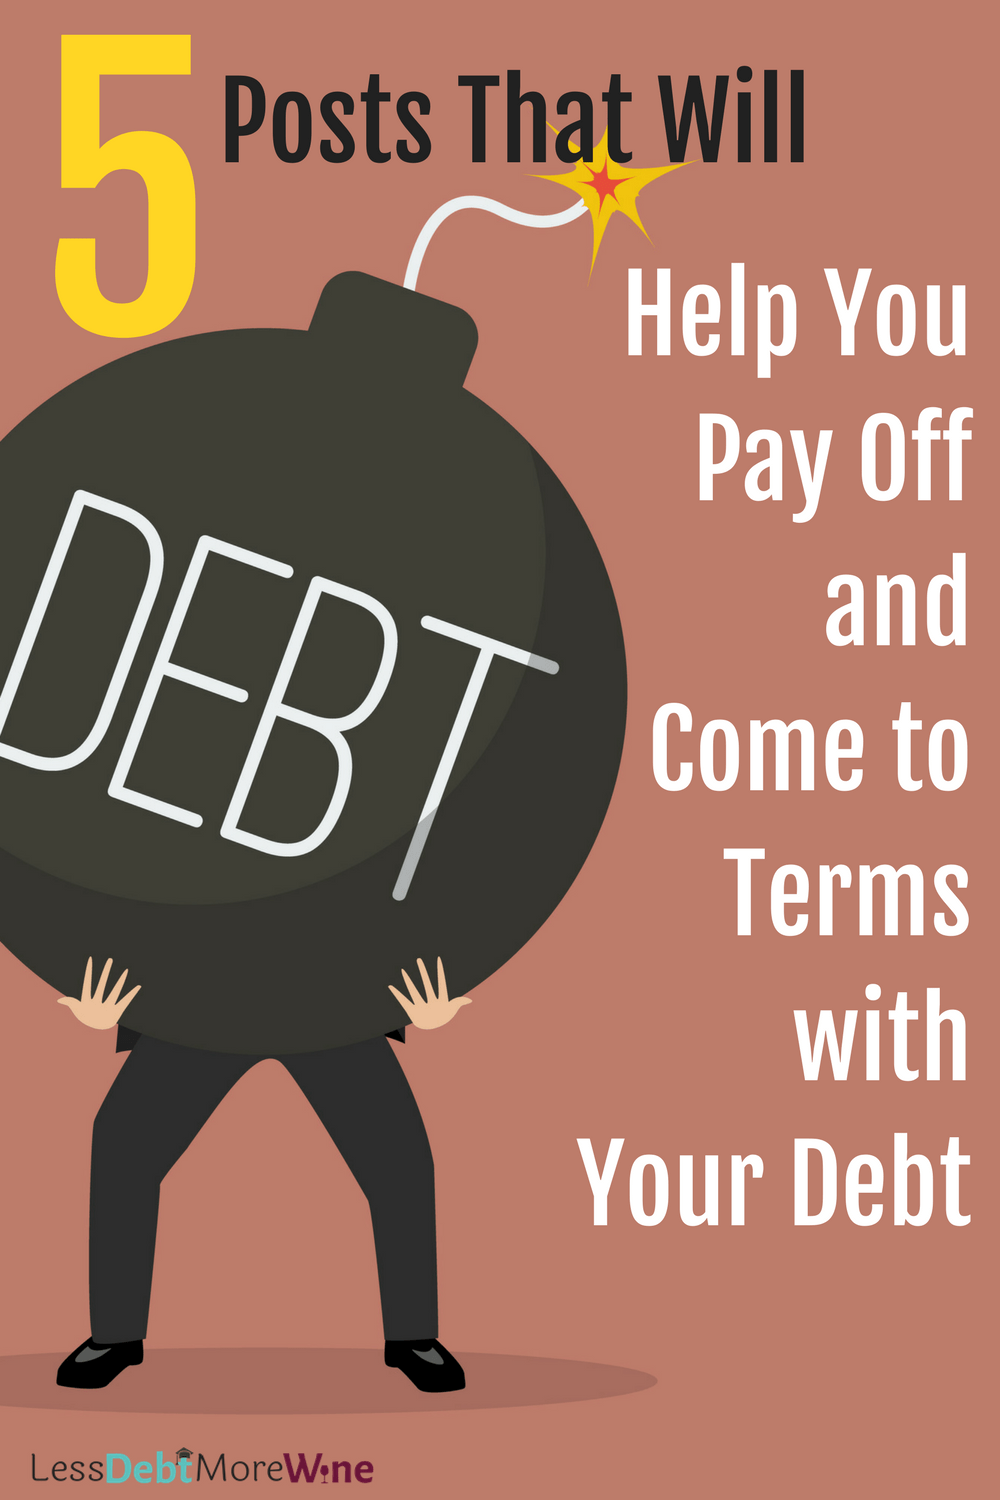 pay off debt | debt repayment | student debt | student loans | credit card debt | how to pay off debt | debt payoff | pay off your debt